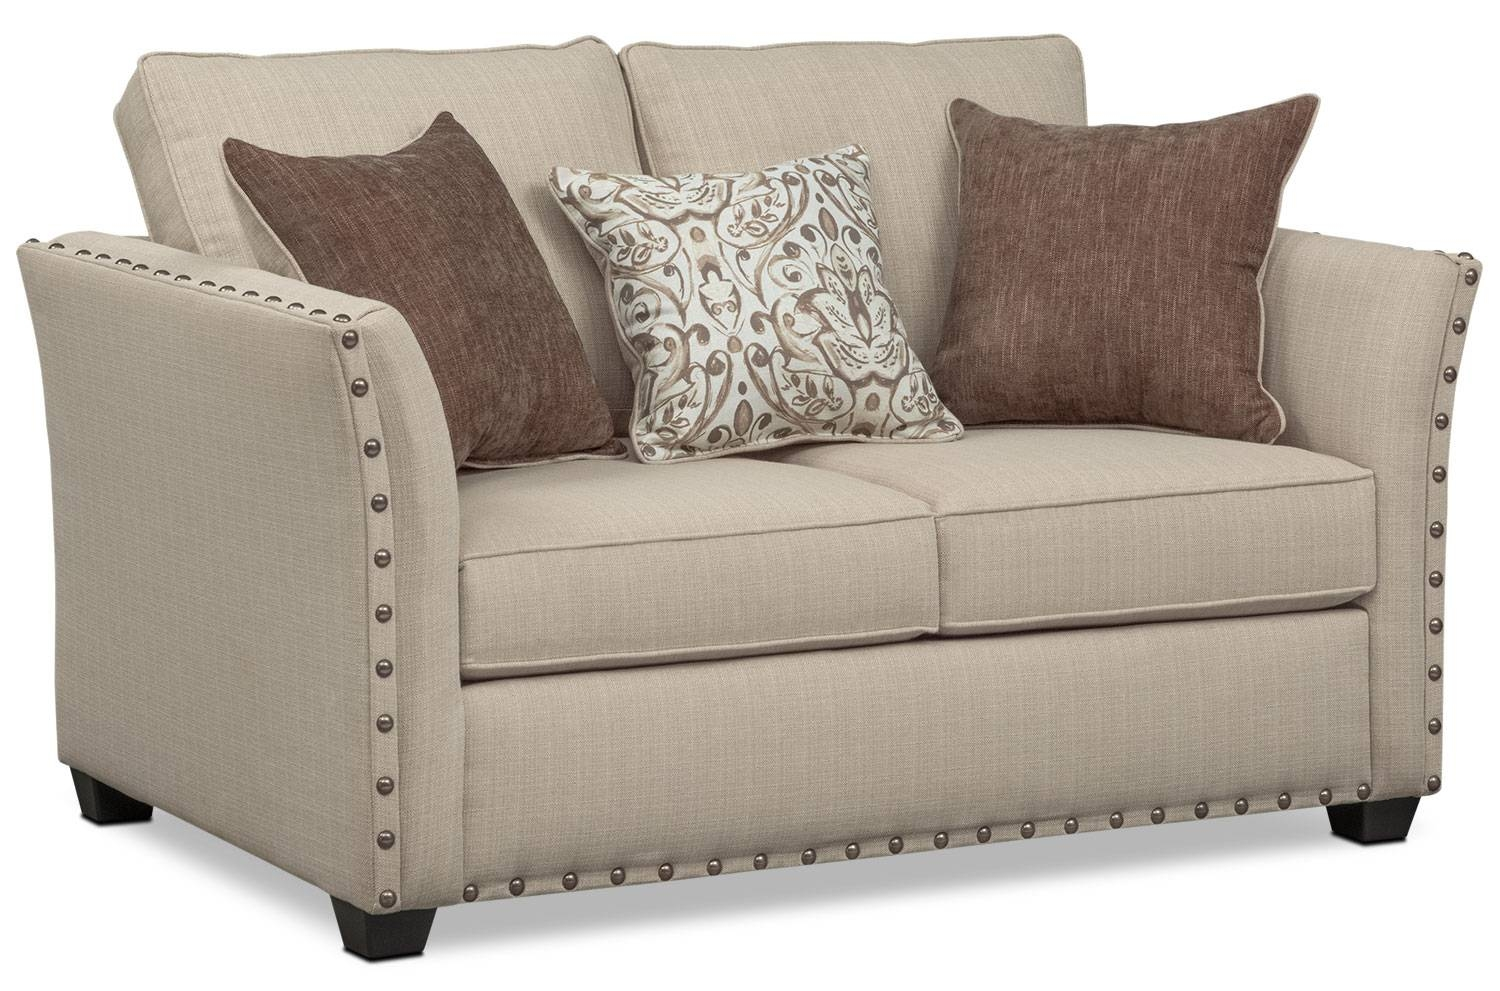 Mckenna Queen Memory Foam Sleeper Sofa, Loveseat, And Chair Set for Sofa and Chair Set (Image 21 of 30)